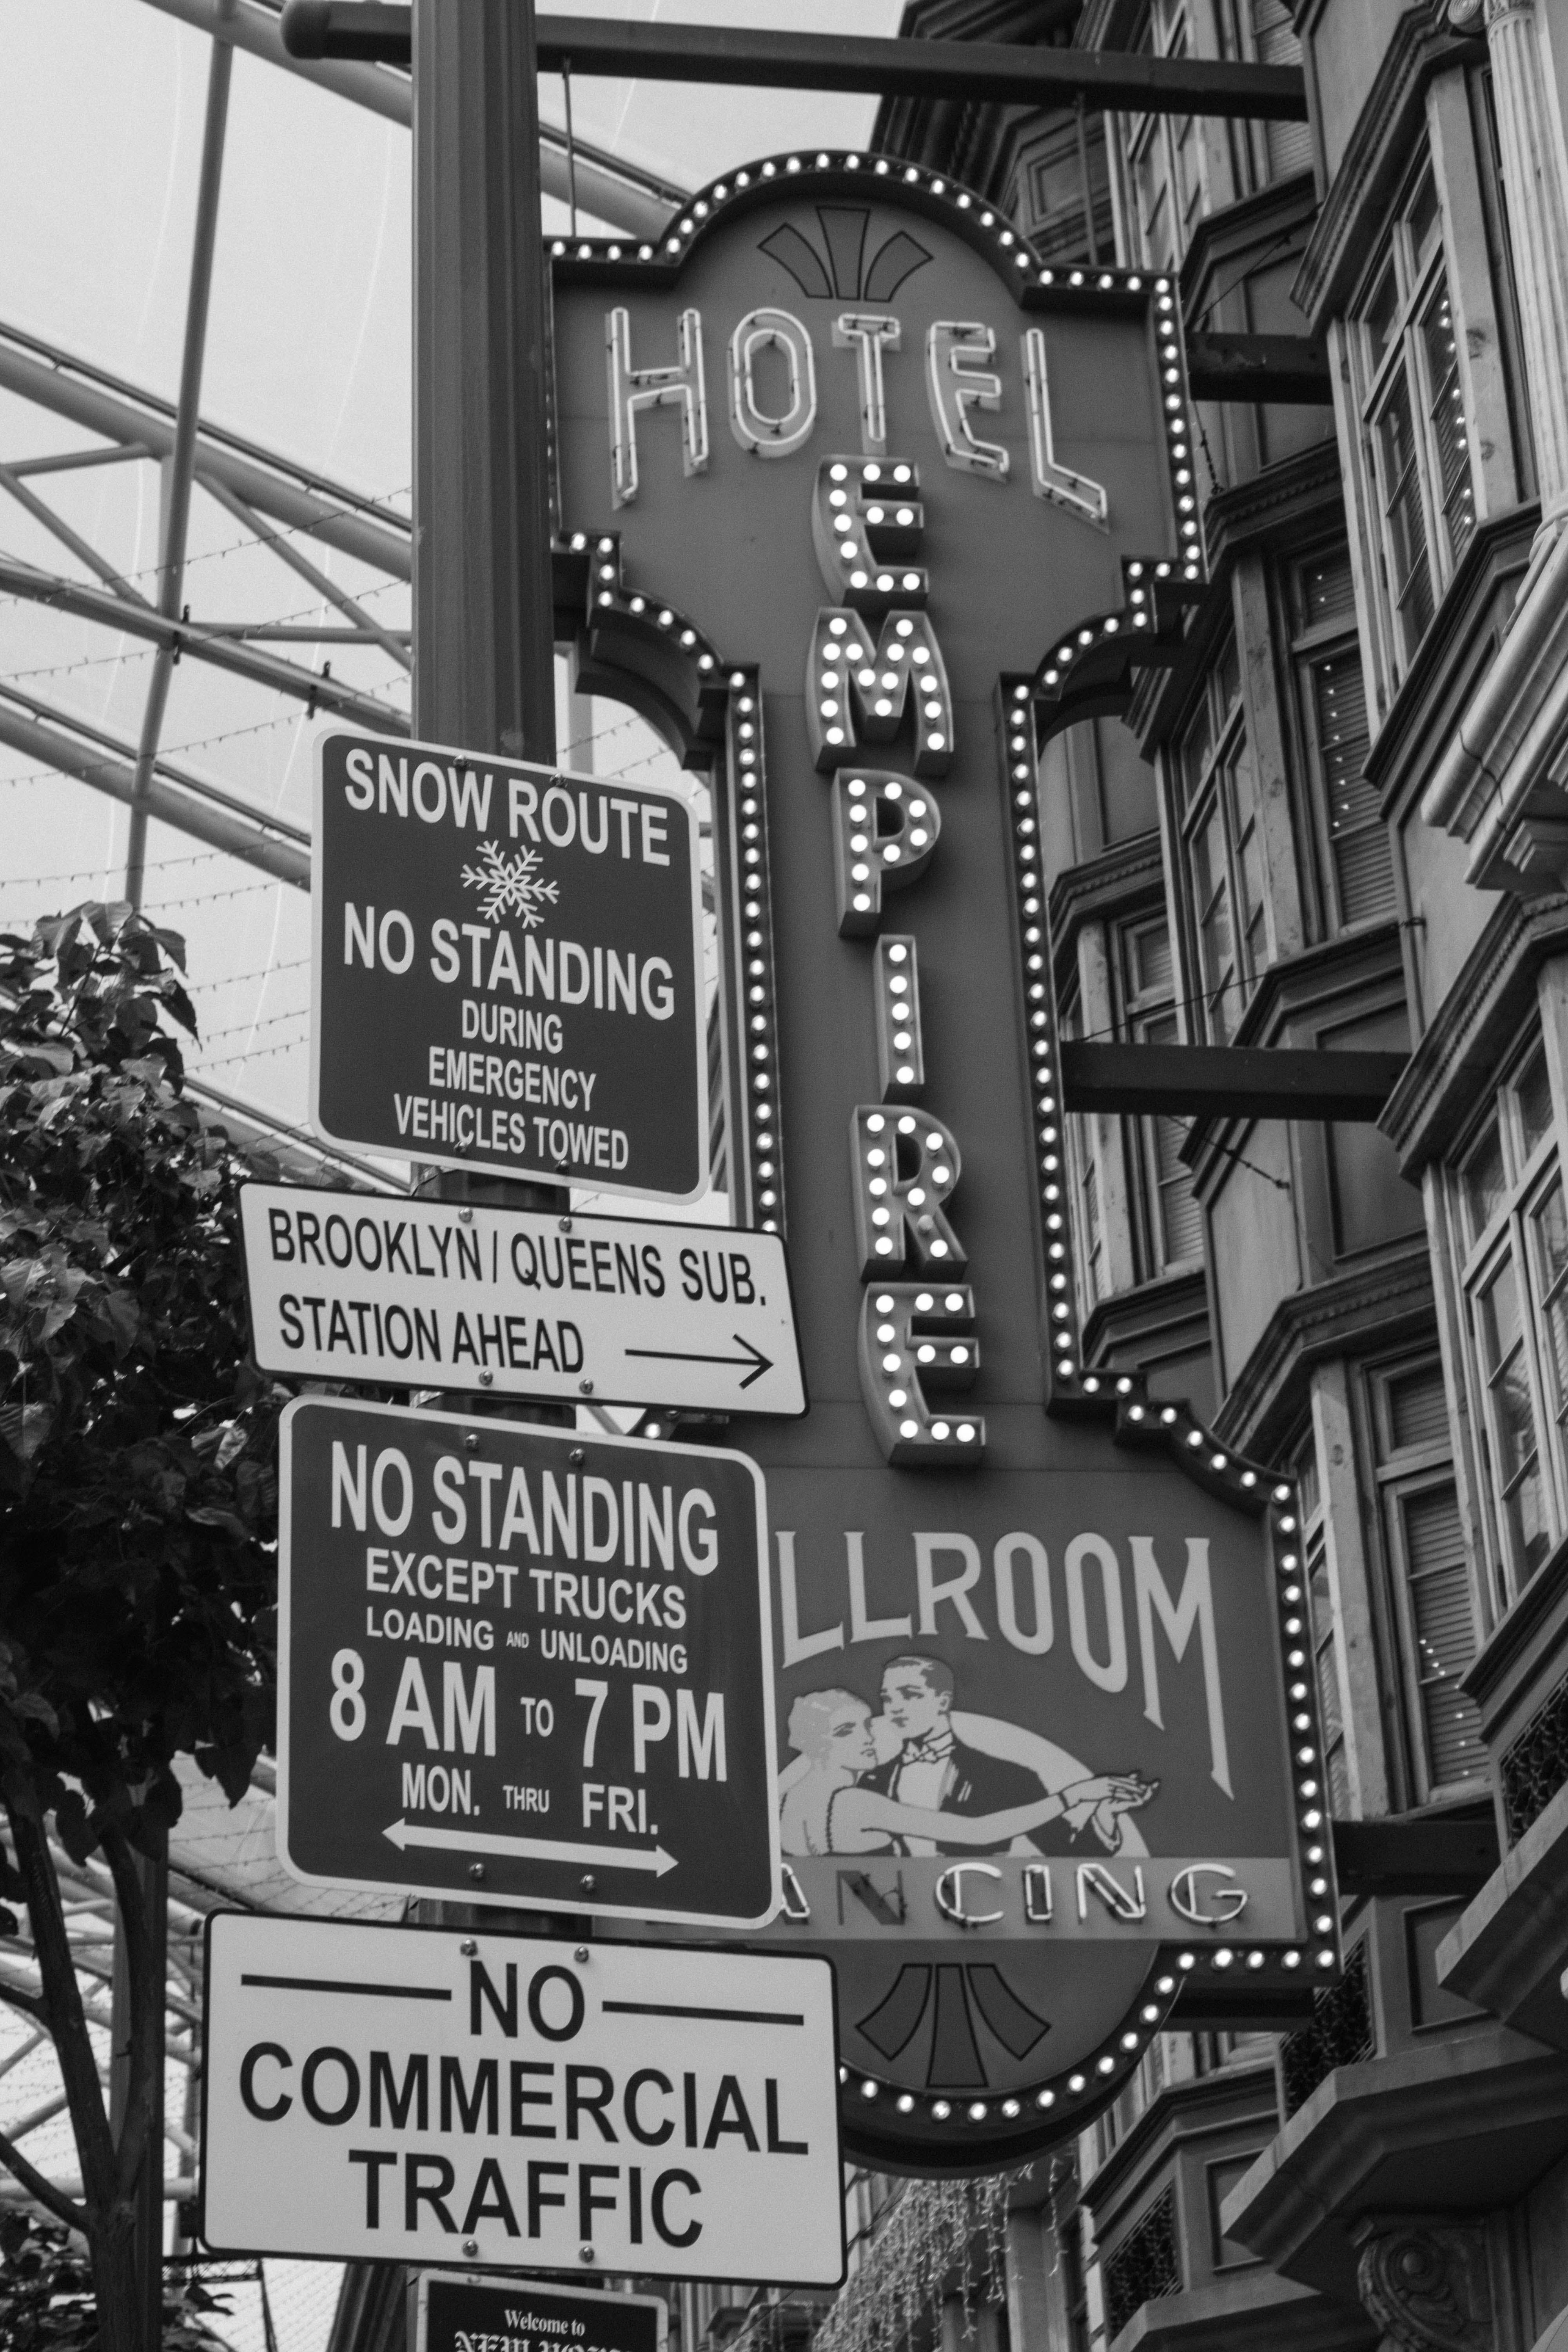 Grayscale Photo of Hotel Empire Signage